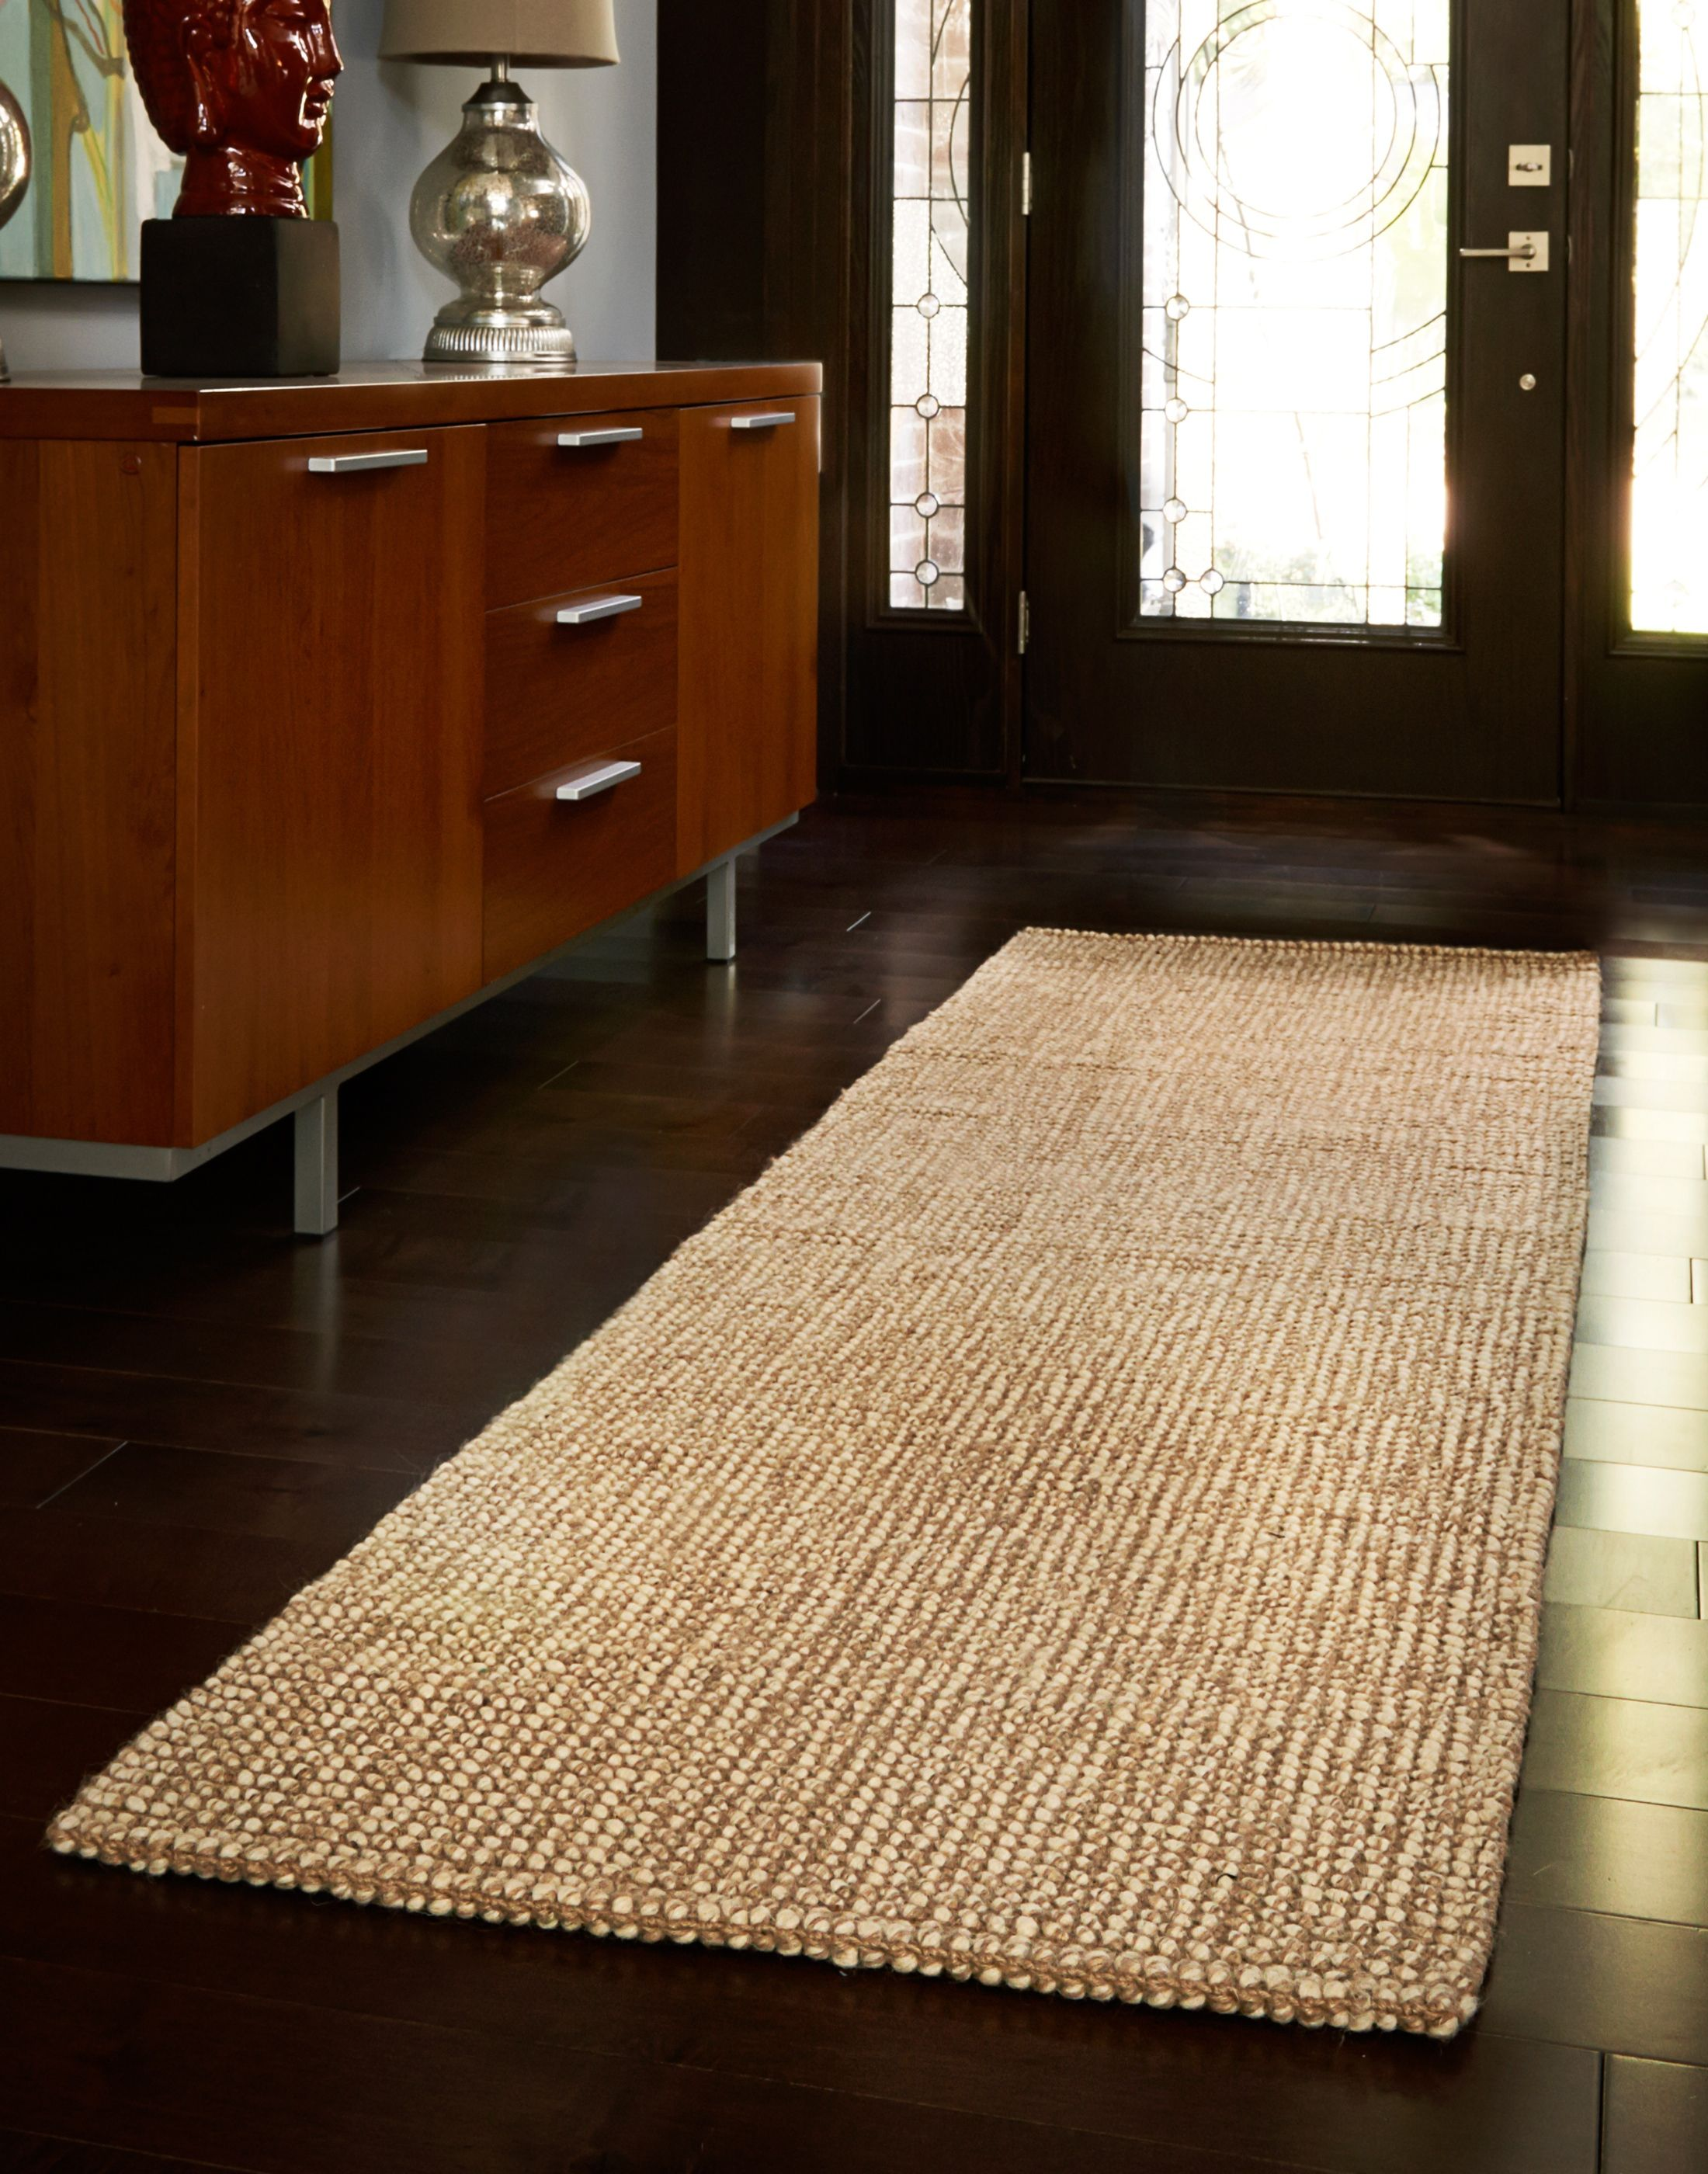 Foyer Rugs And Runners : Nice brown striped runner rug entryway hallway home decor